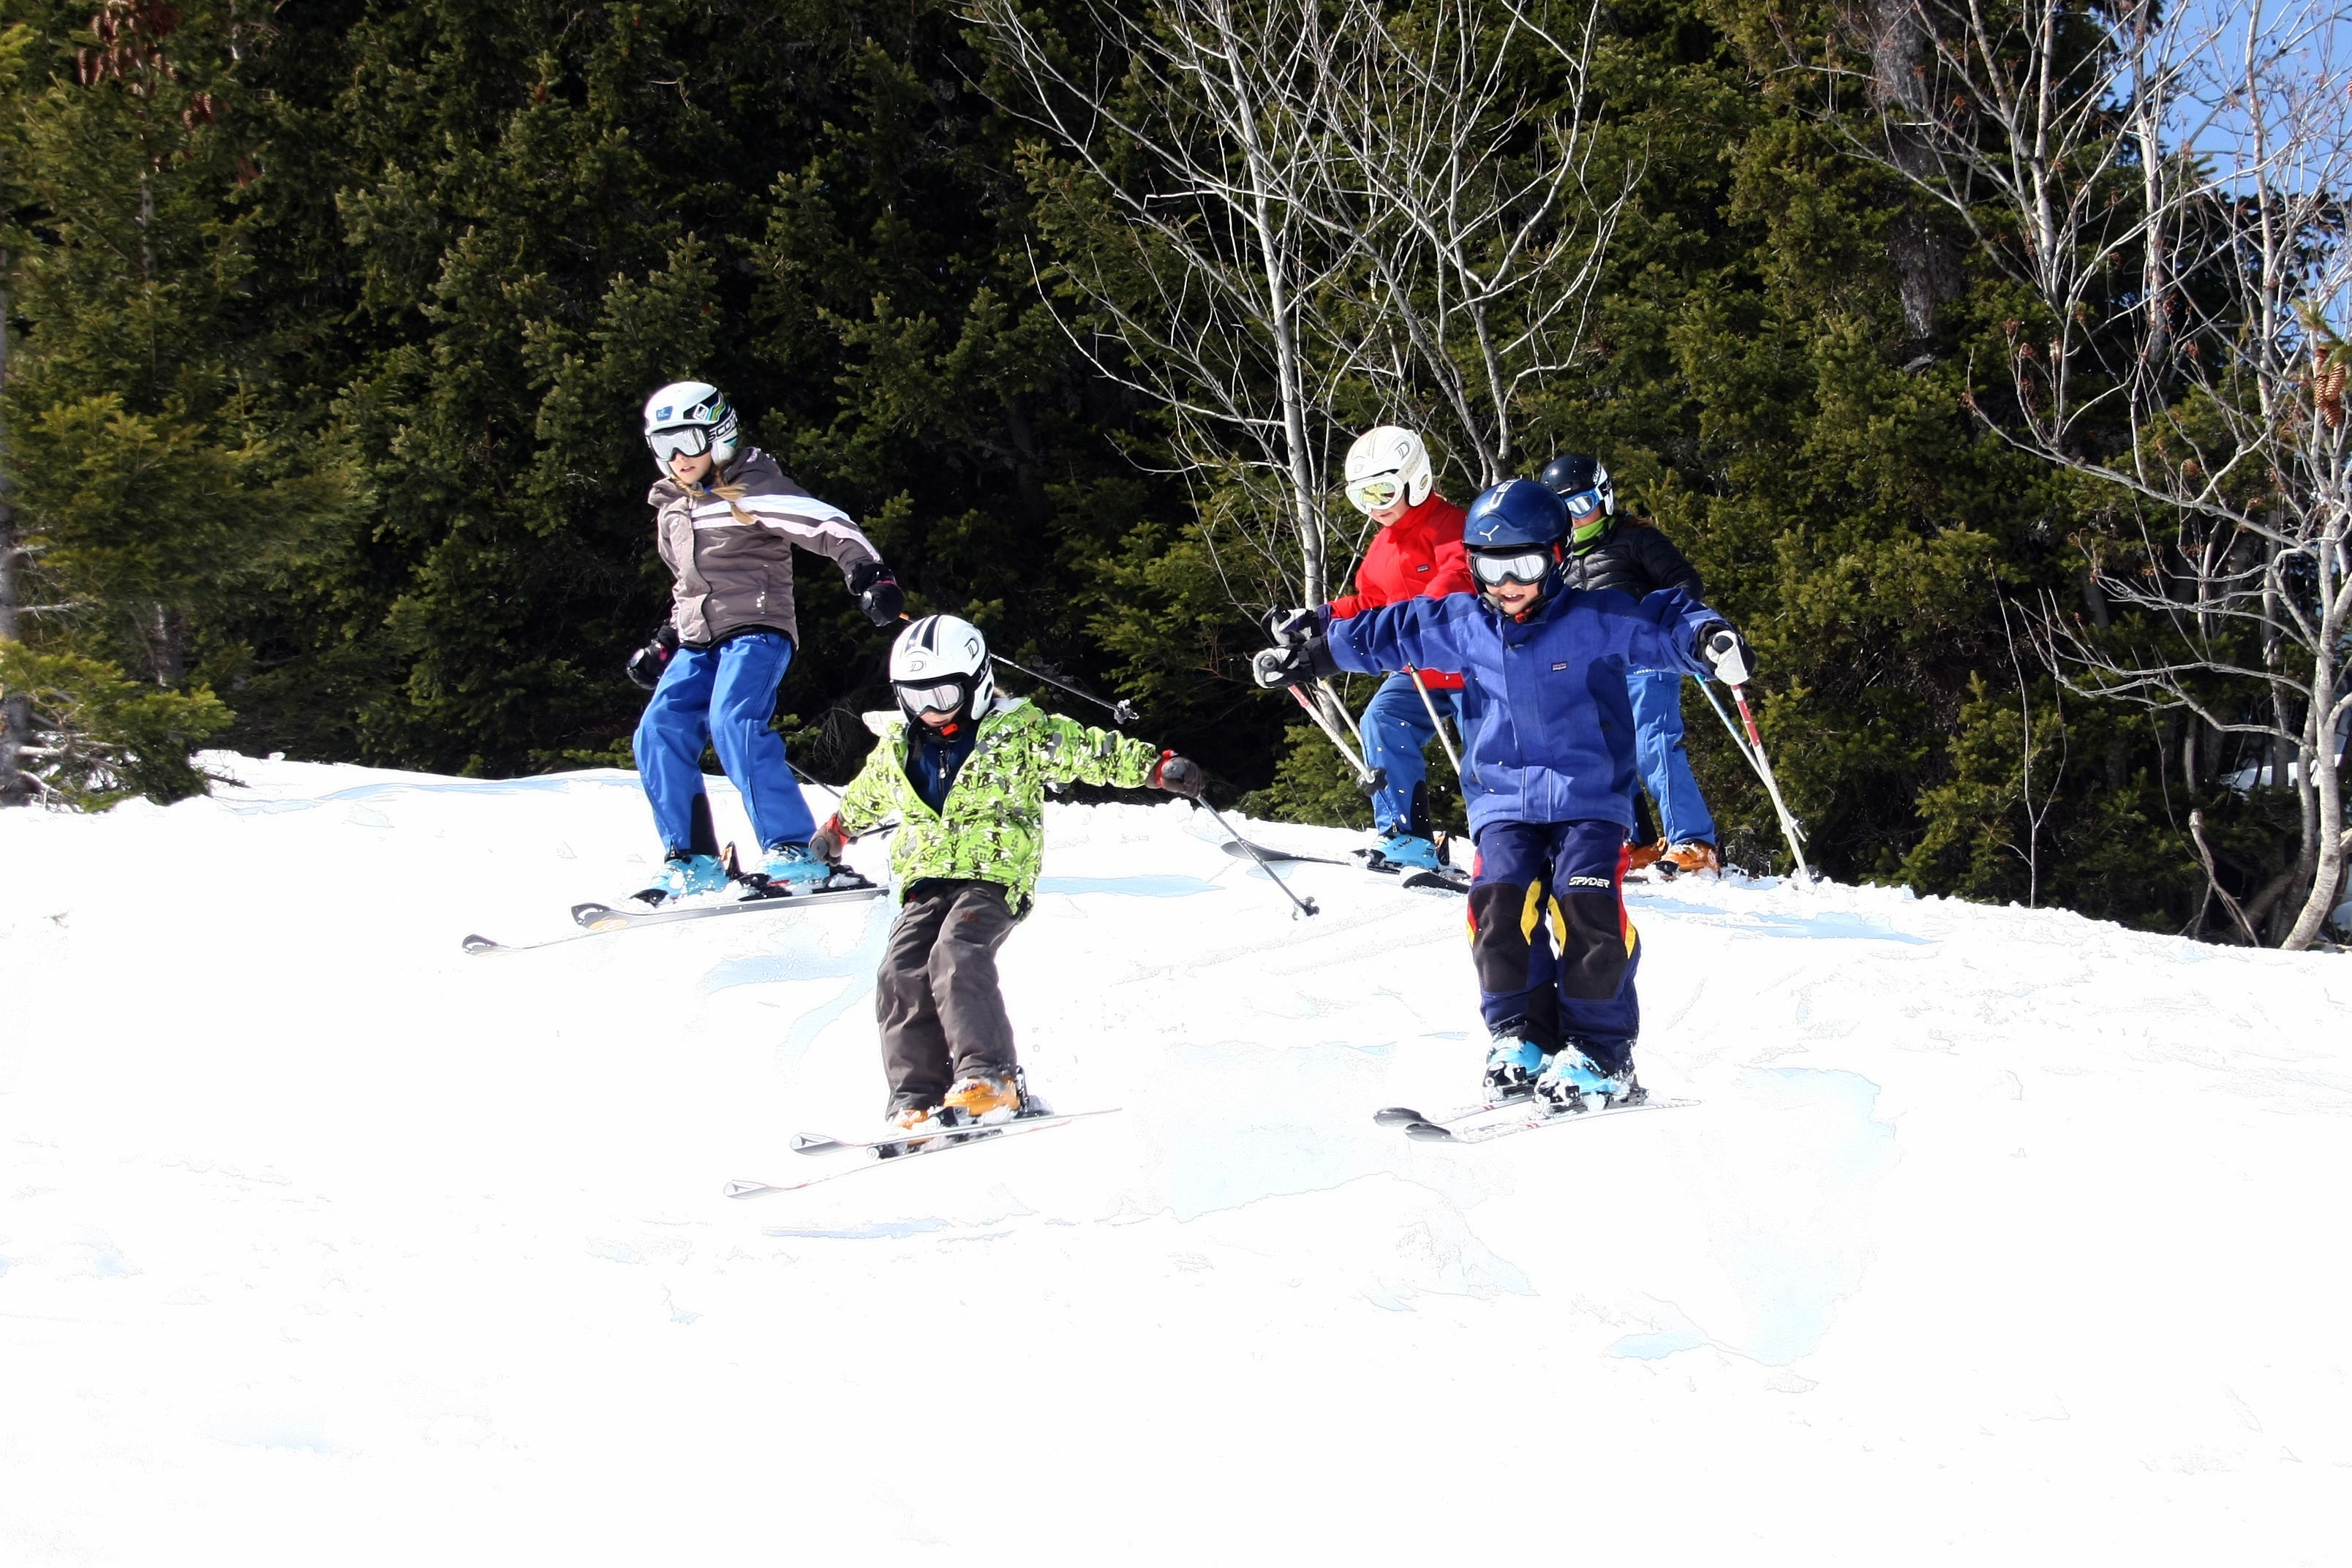 Children skiing in Flaine